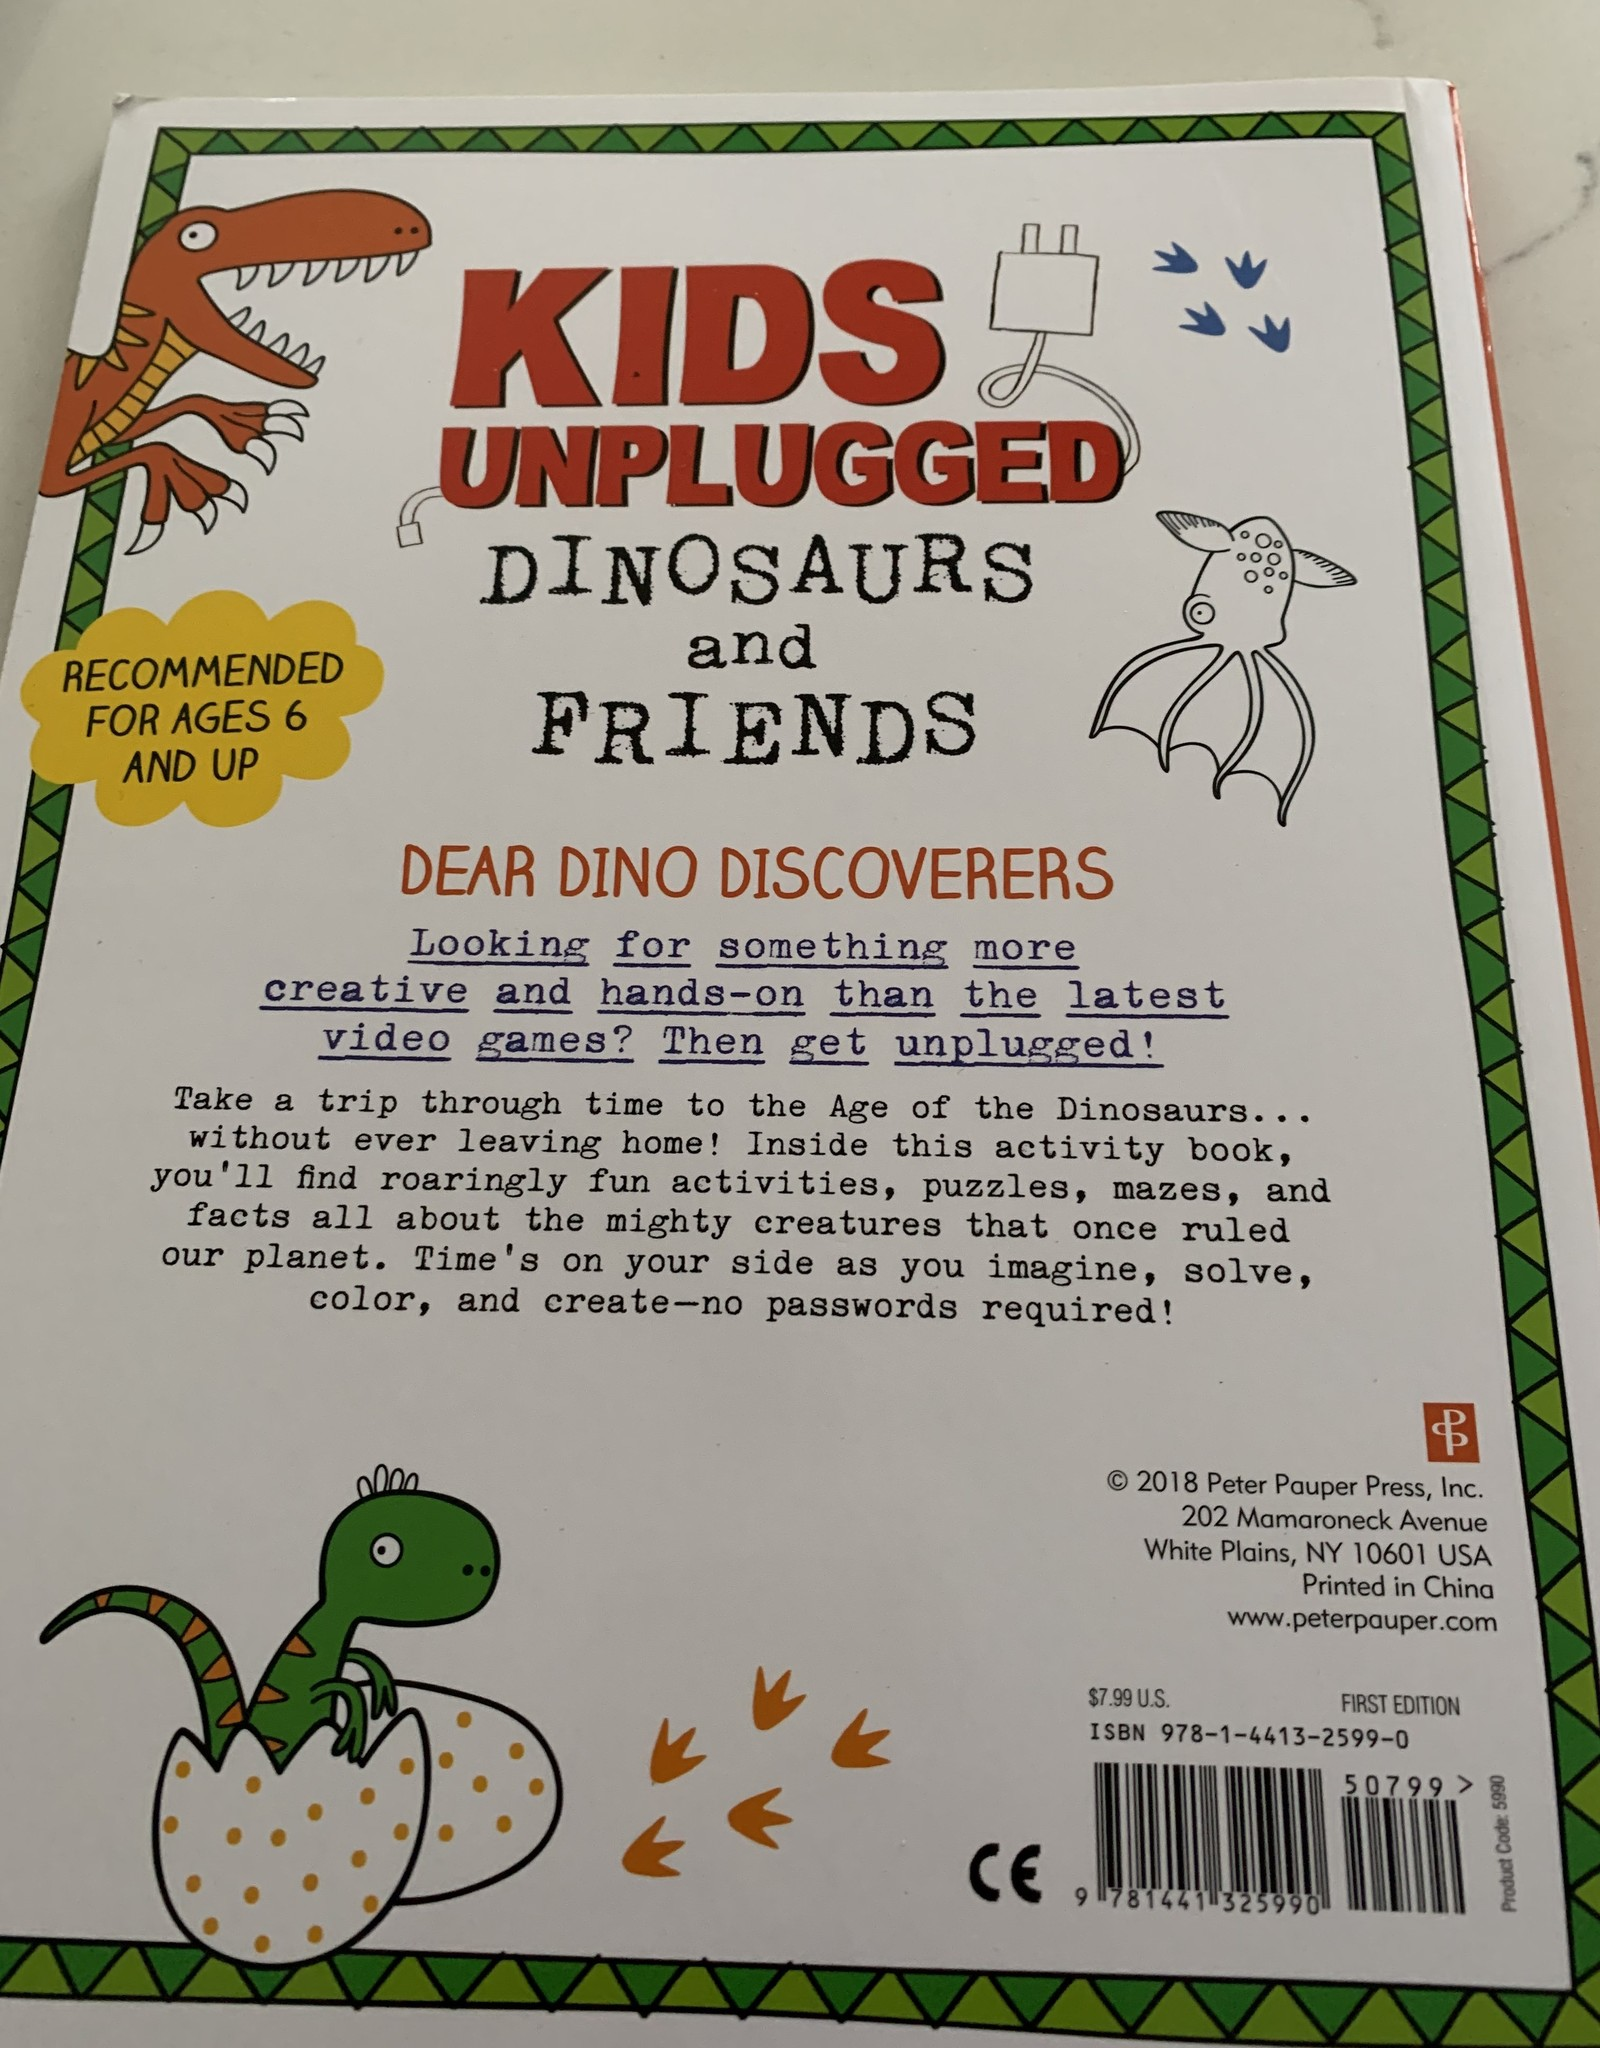 PETER PAUPER PRESS Kids Unplugged Animals Adventures Activity Book - Dinosaurs & Friends